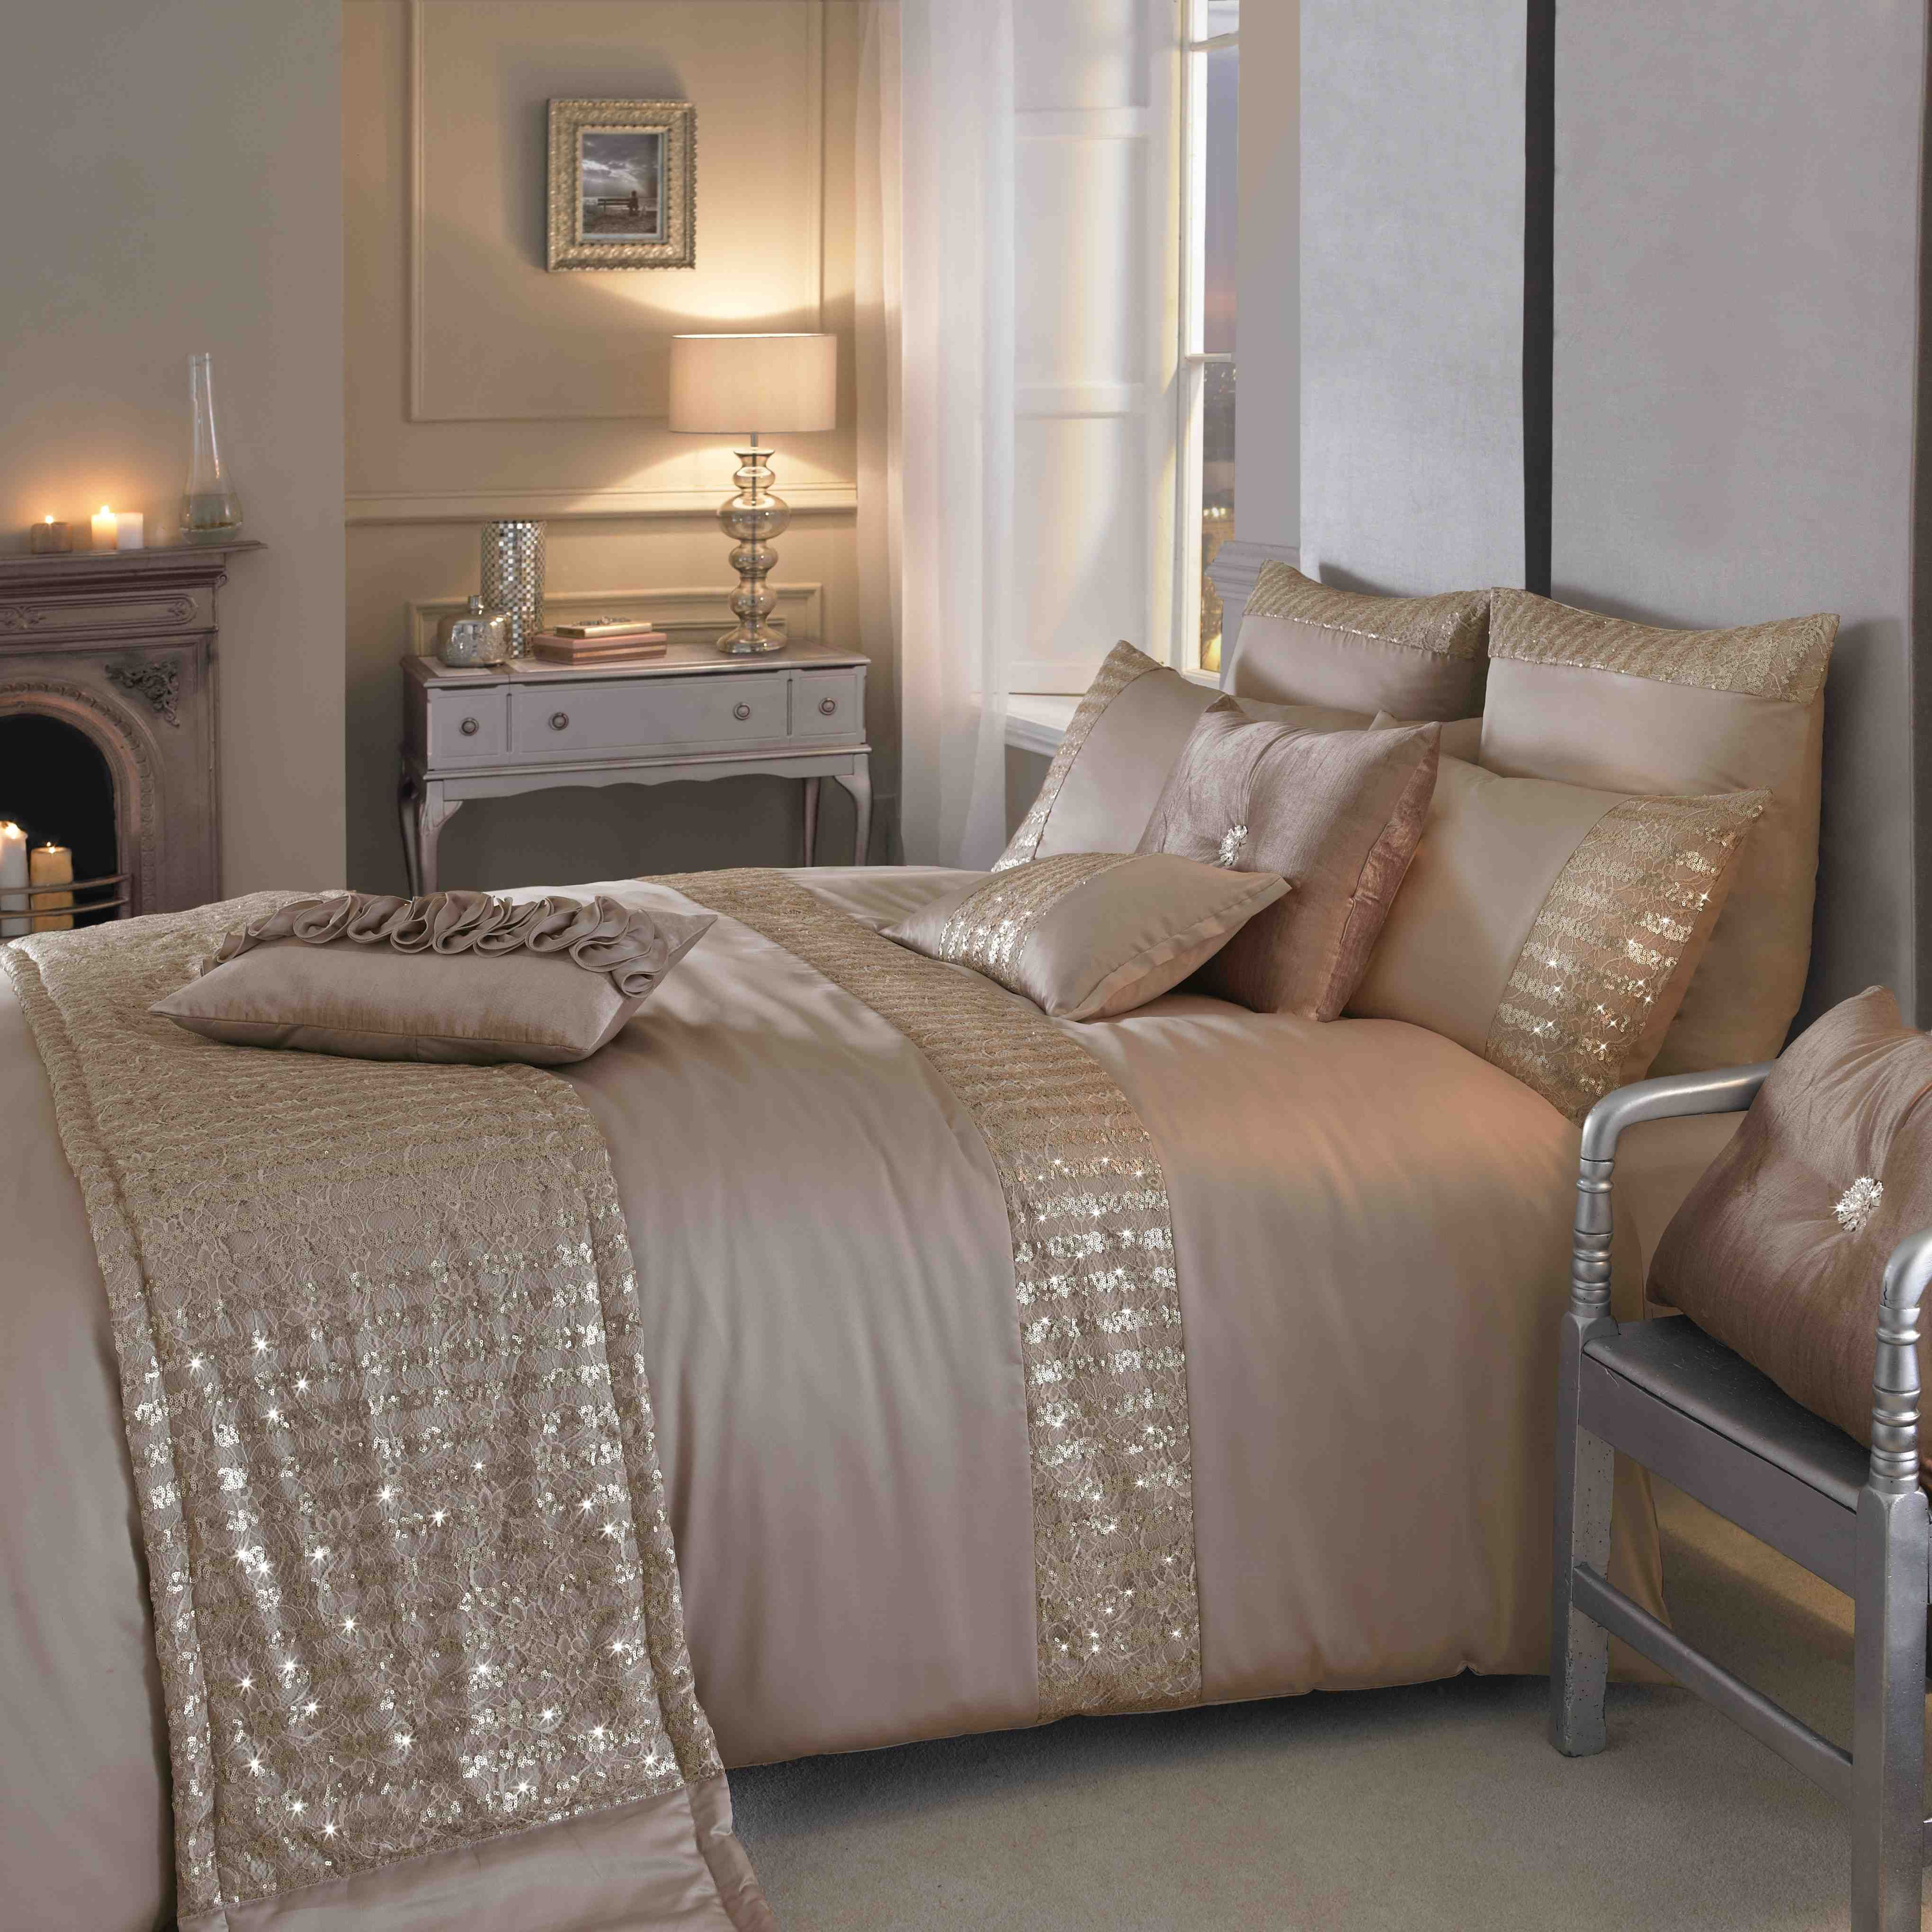 Blush and gold bedroom kylie minogue summer bedding has arrived master bedroom pinterest Master bedroom bed linens